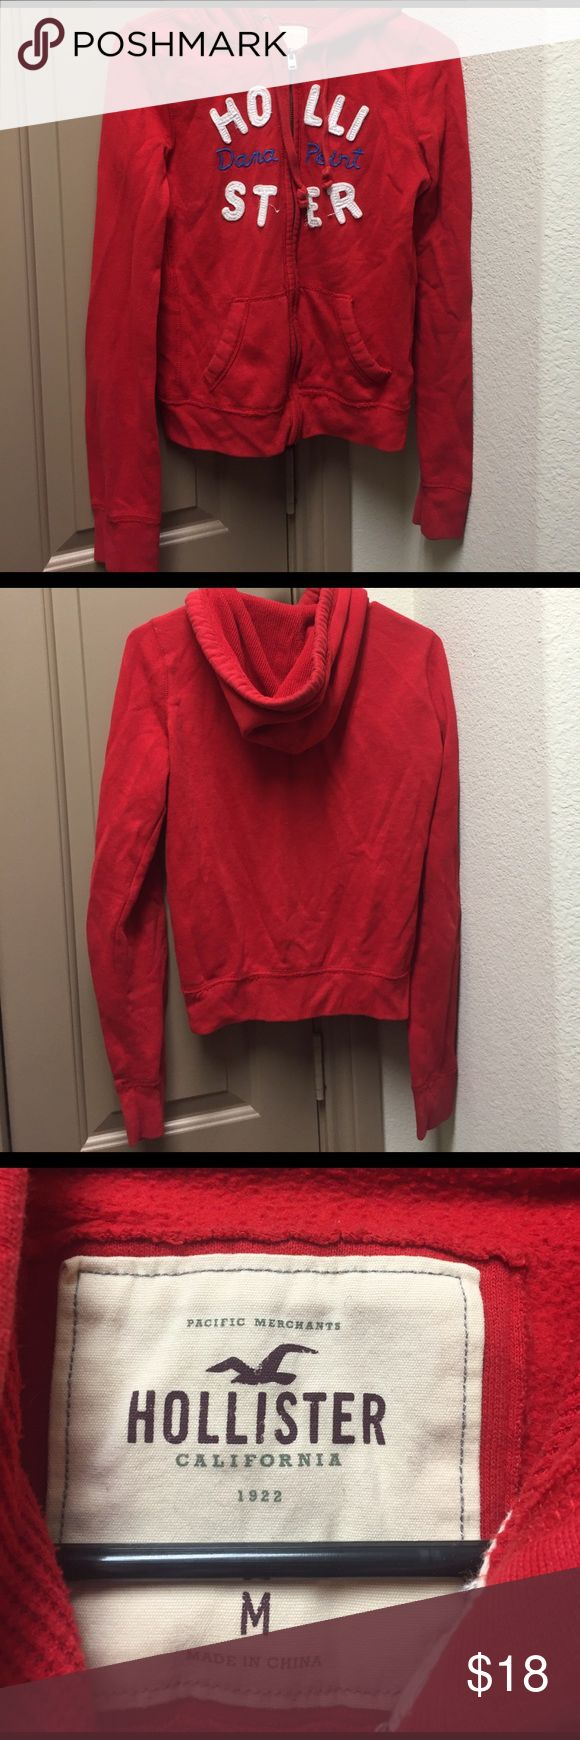 Hollister zip up hoodie red jacket Hollister red zip up jacket with hoodie in medium. Bid Hollister Jackets & Coats